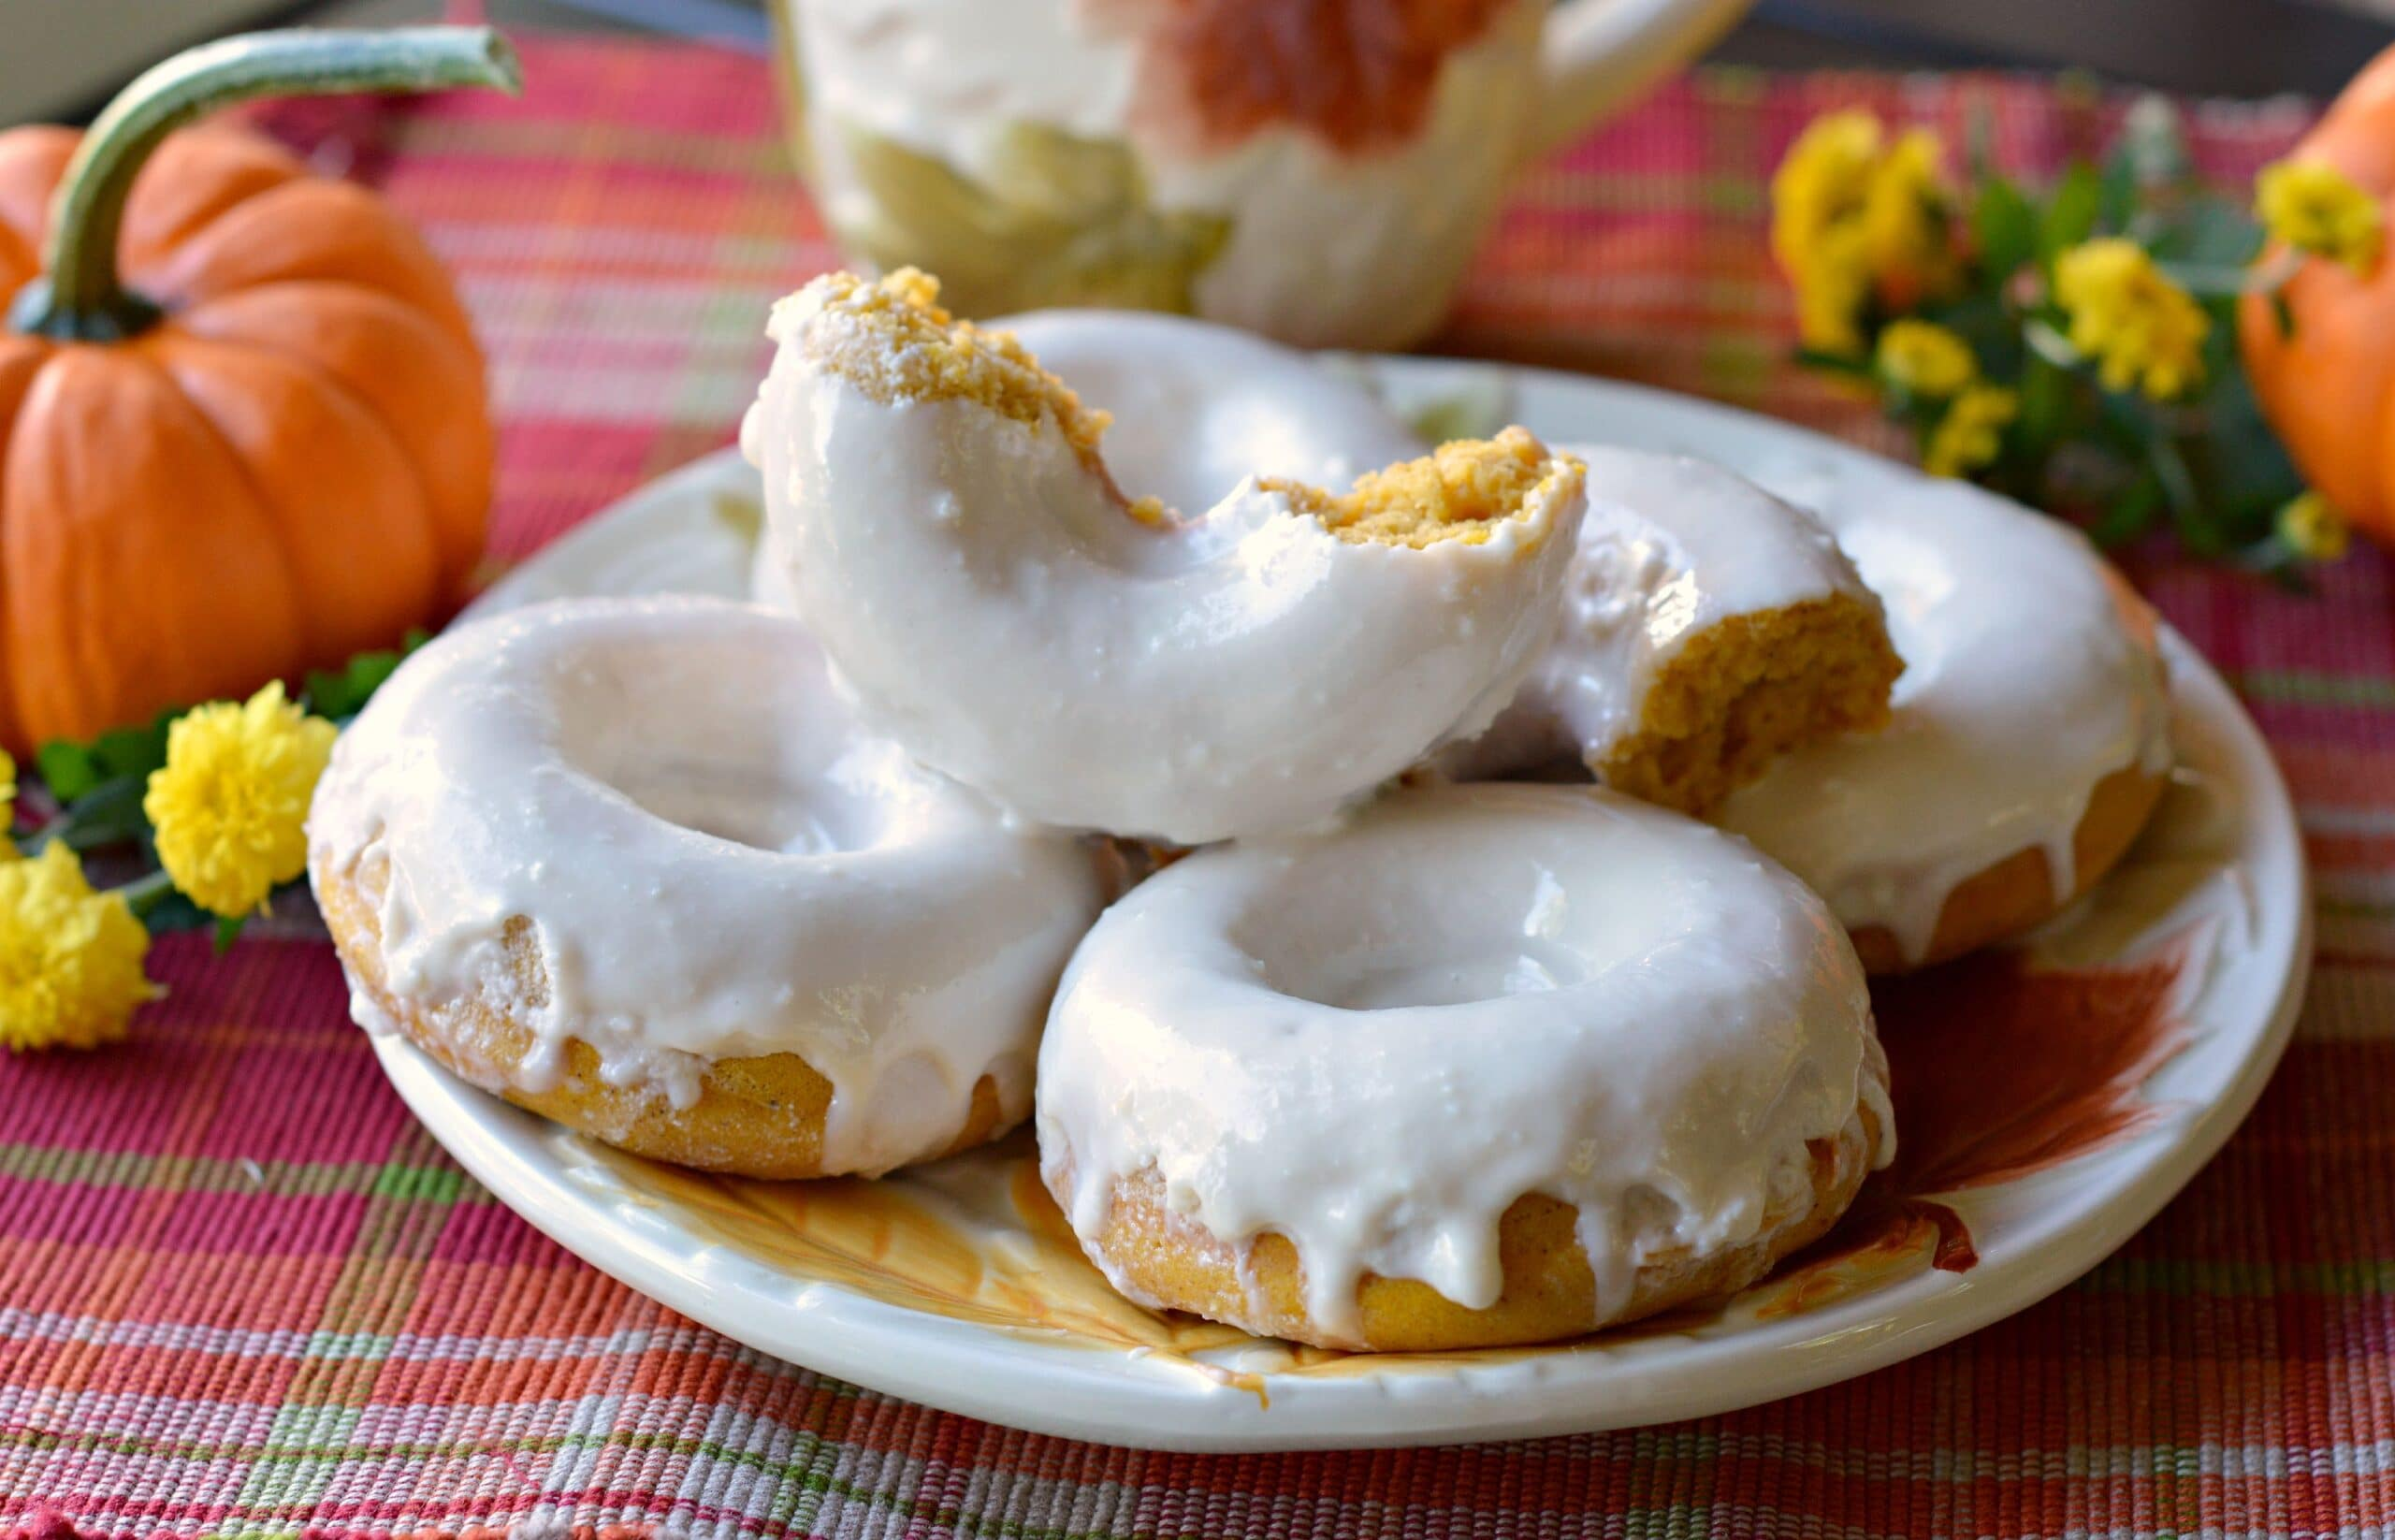 Baked Buttermilk Pumpkin Donuts Stacked On Plate. Calling all pumpkin lovers! Try my moist Baked Buttermilk Pumpkin Donut Recipe. Frosted with cream cheese and baked to perfection in my No Yeast Recipe.